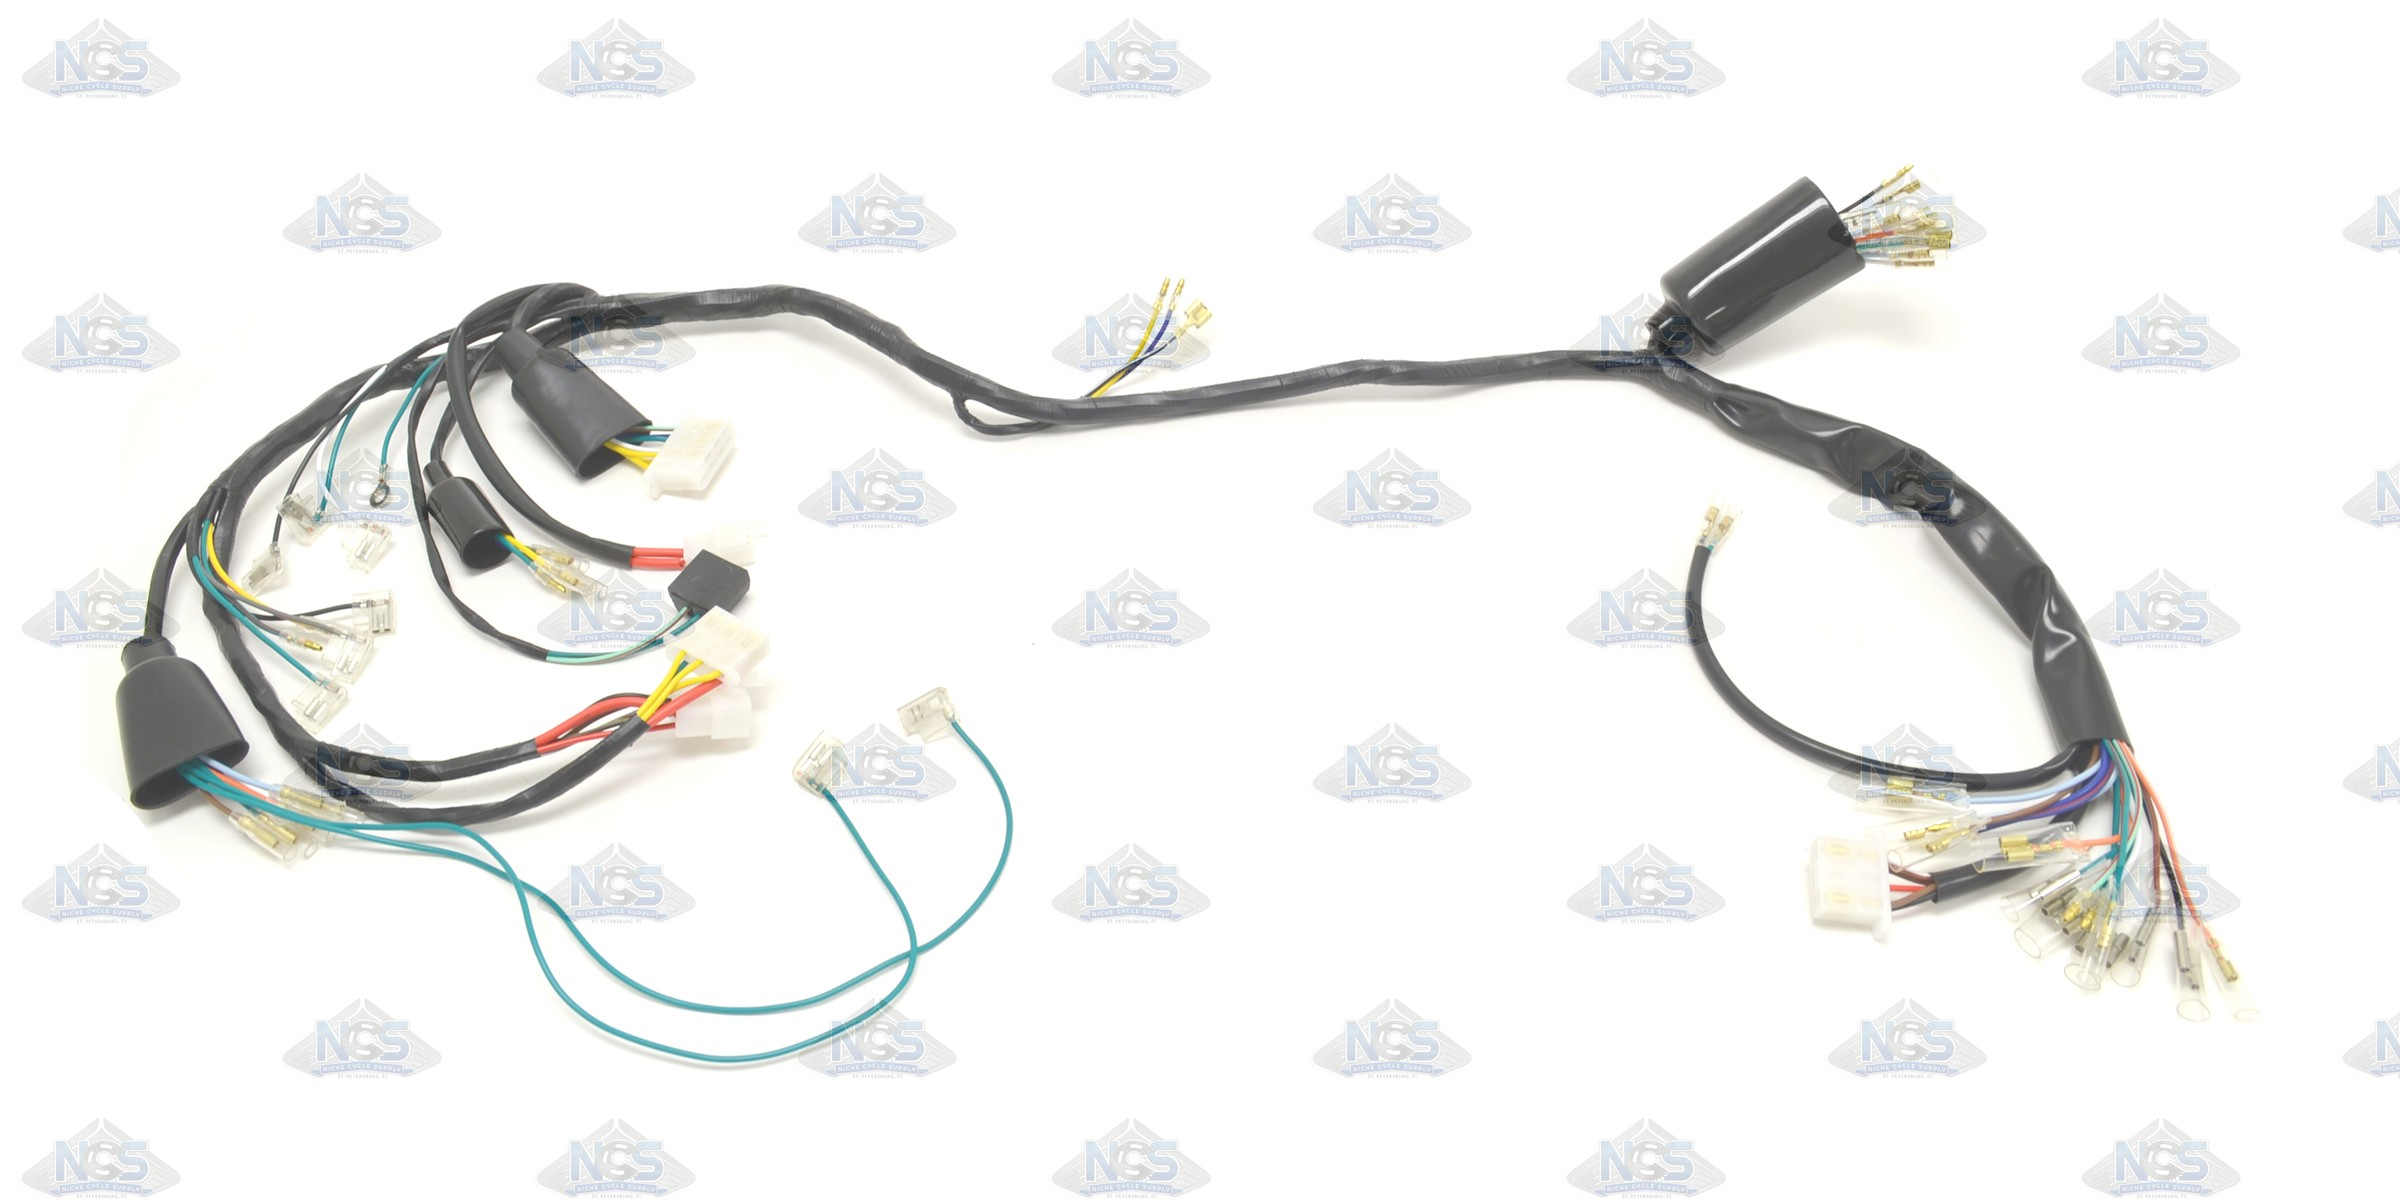 honda cb400f 75 77 complete wire harness 9b8 honda cb400f 75 77 complete wire harness cb400f wiring harness at edmiracle.co